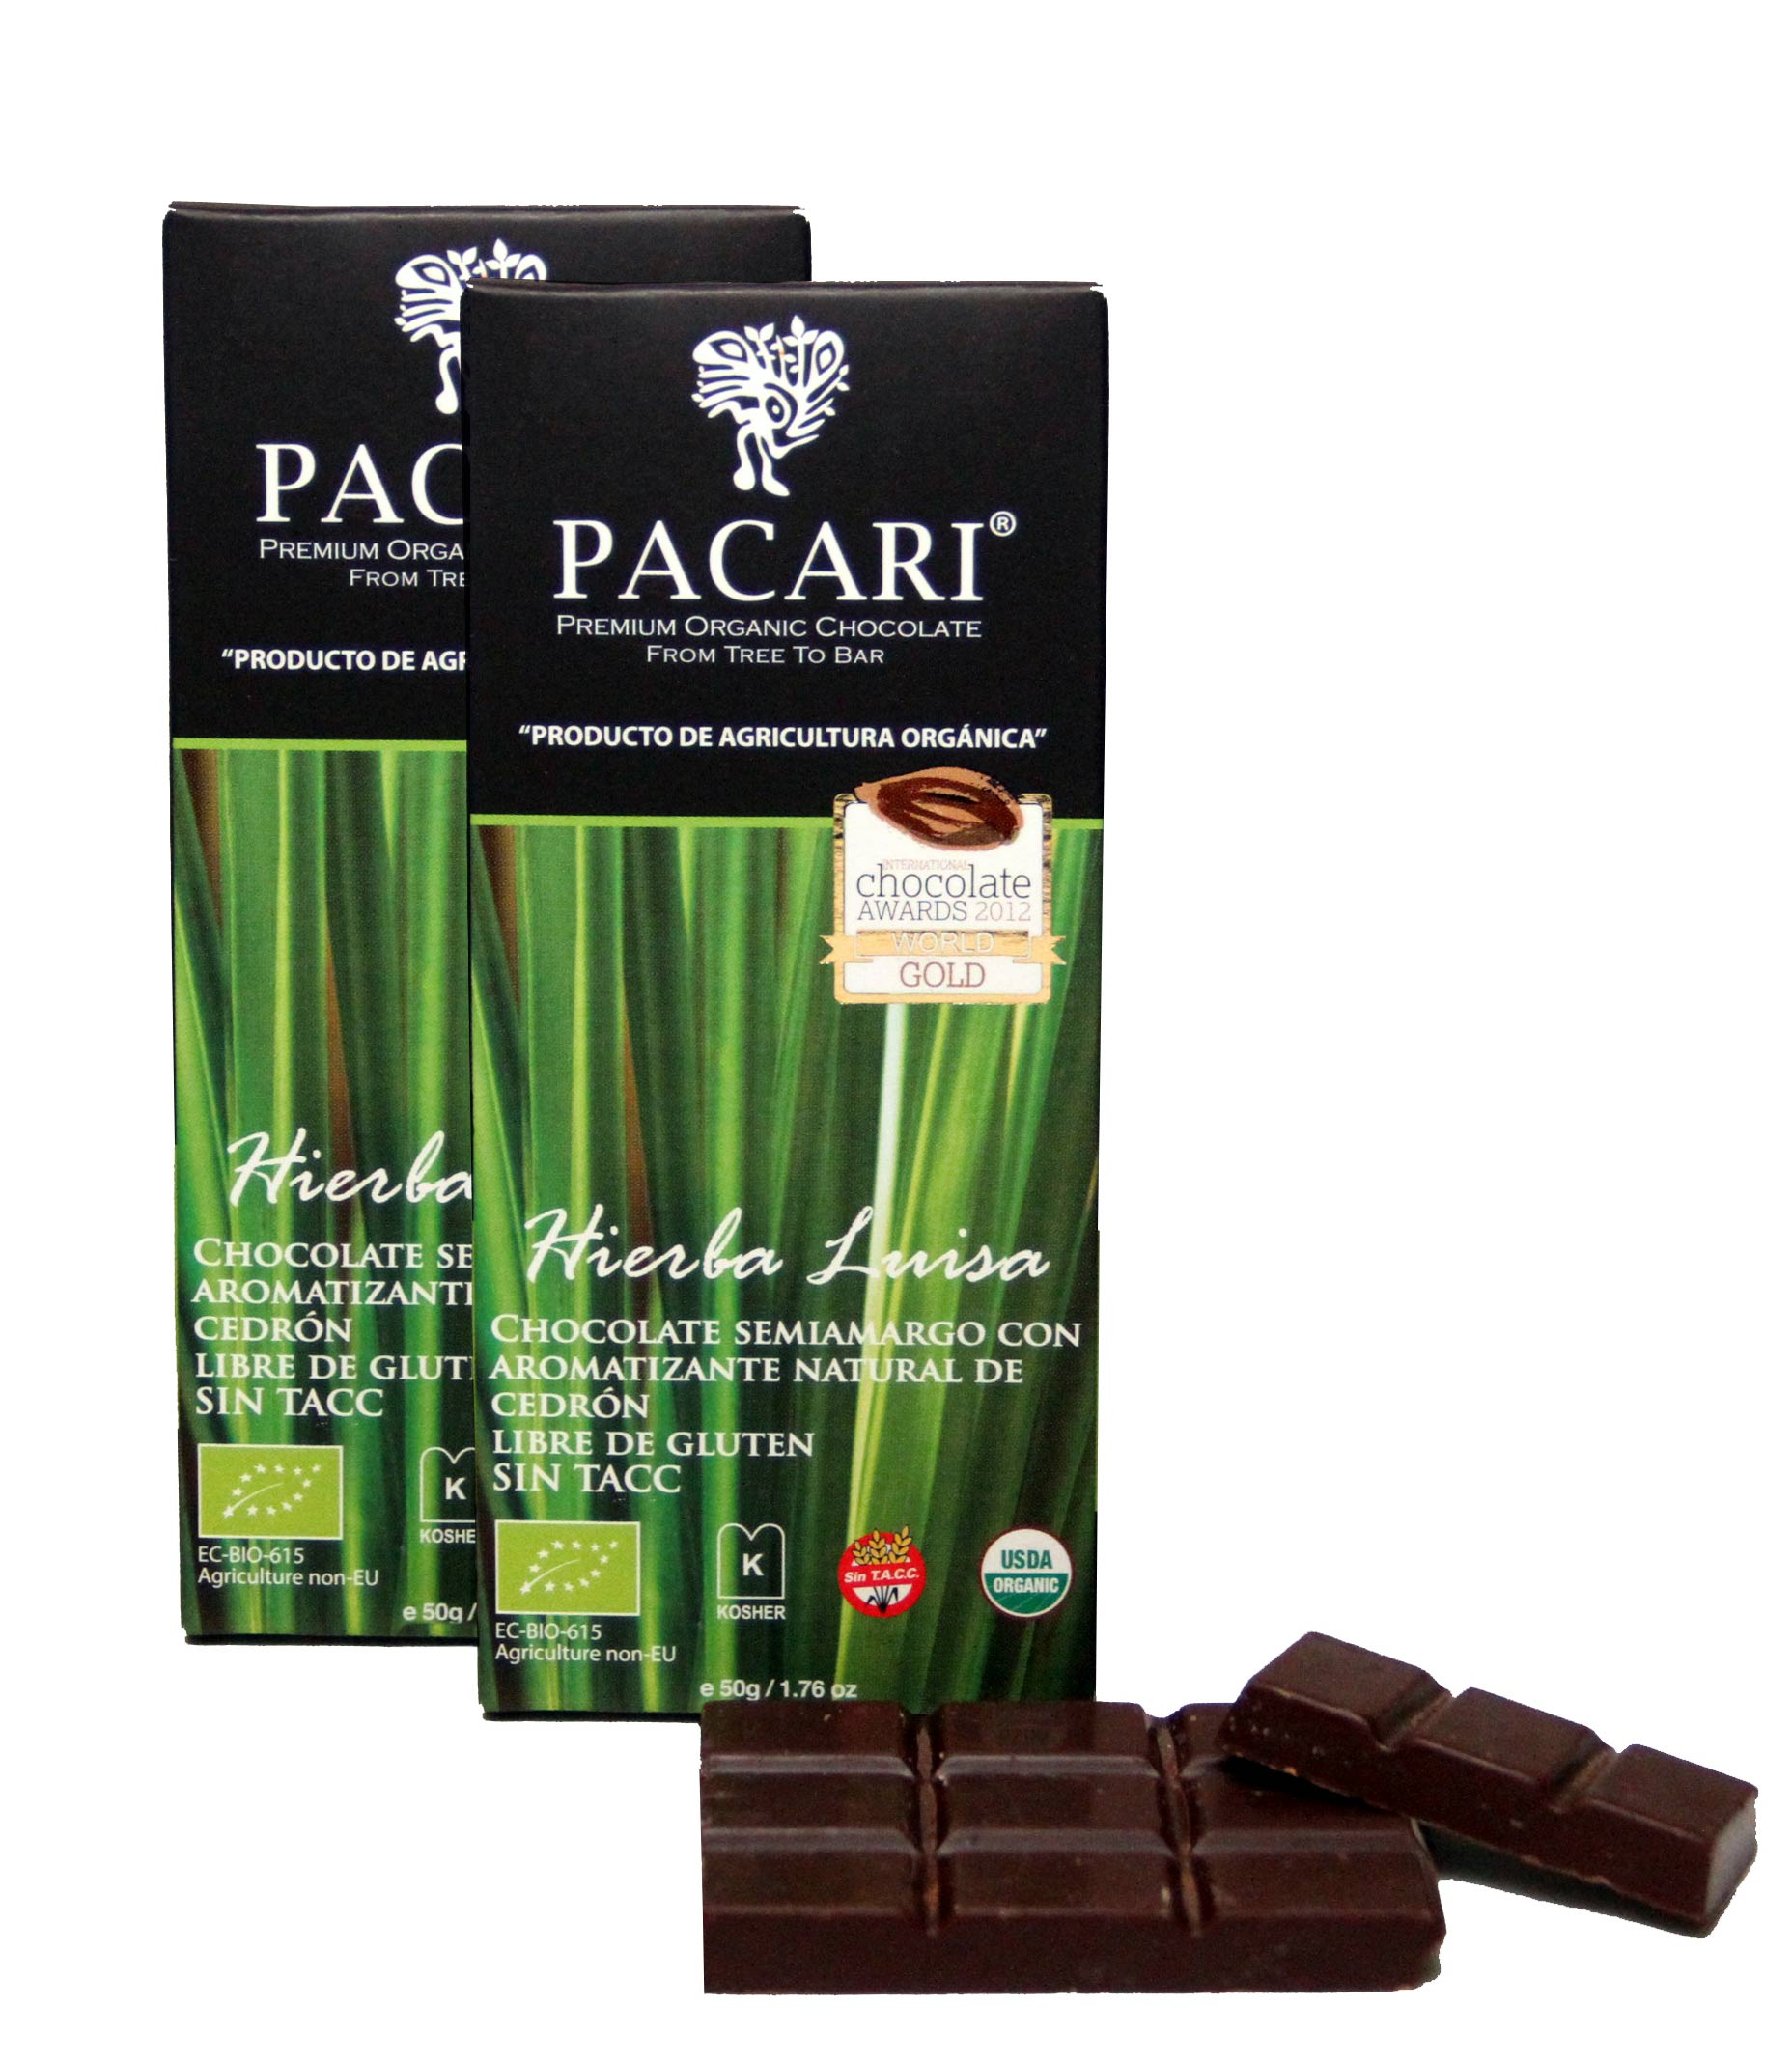 PROMO! Chocolate barra Lemongrass 35% off en la segunda unidad